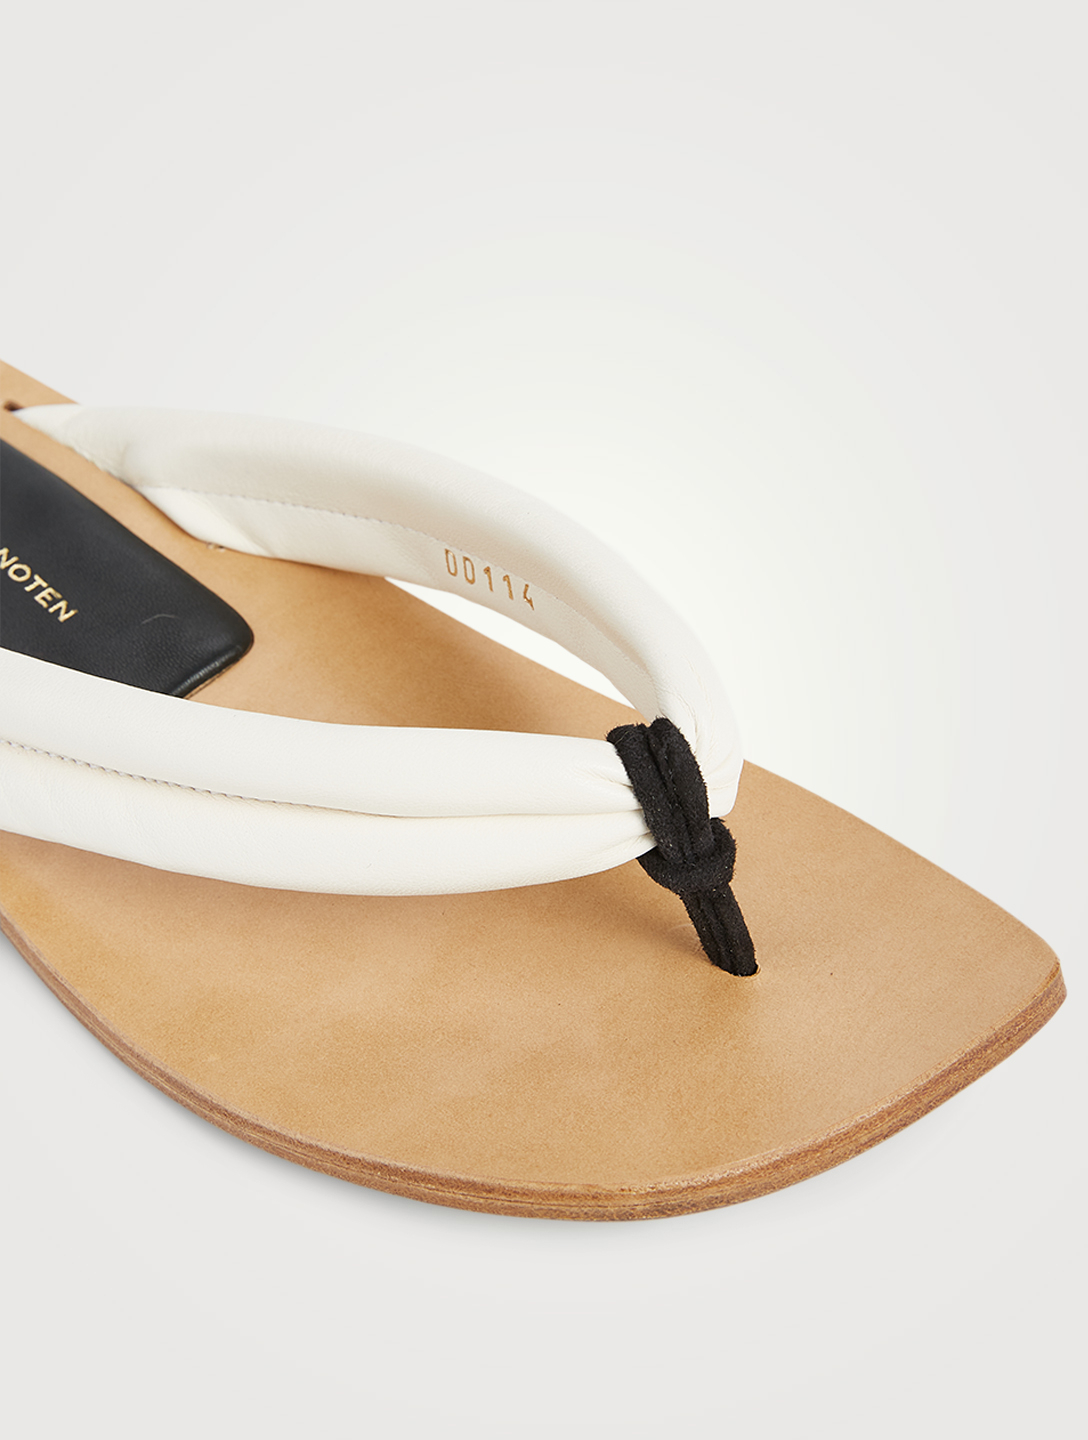 DRIES VAN NOTEN Tongs en cuir Femmes Blanc